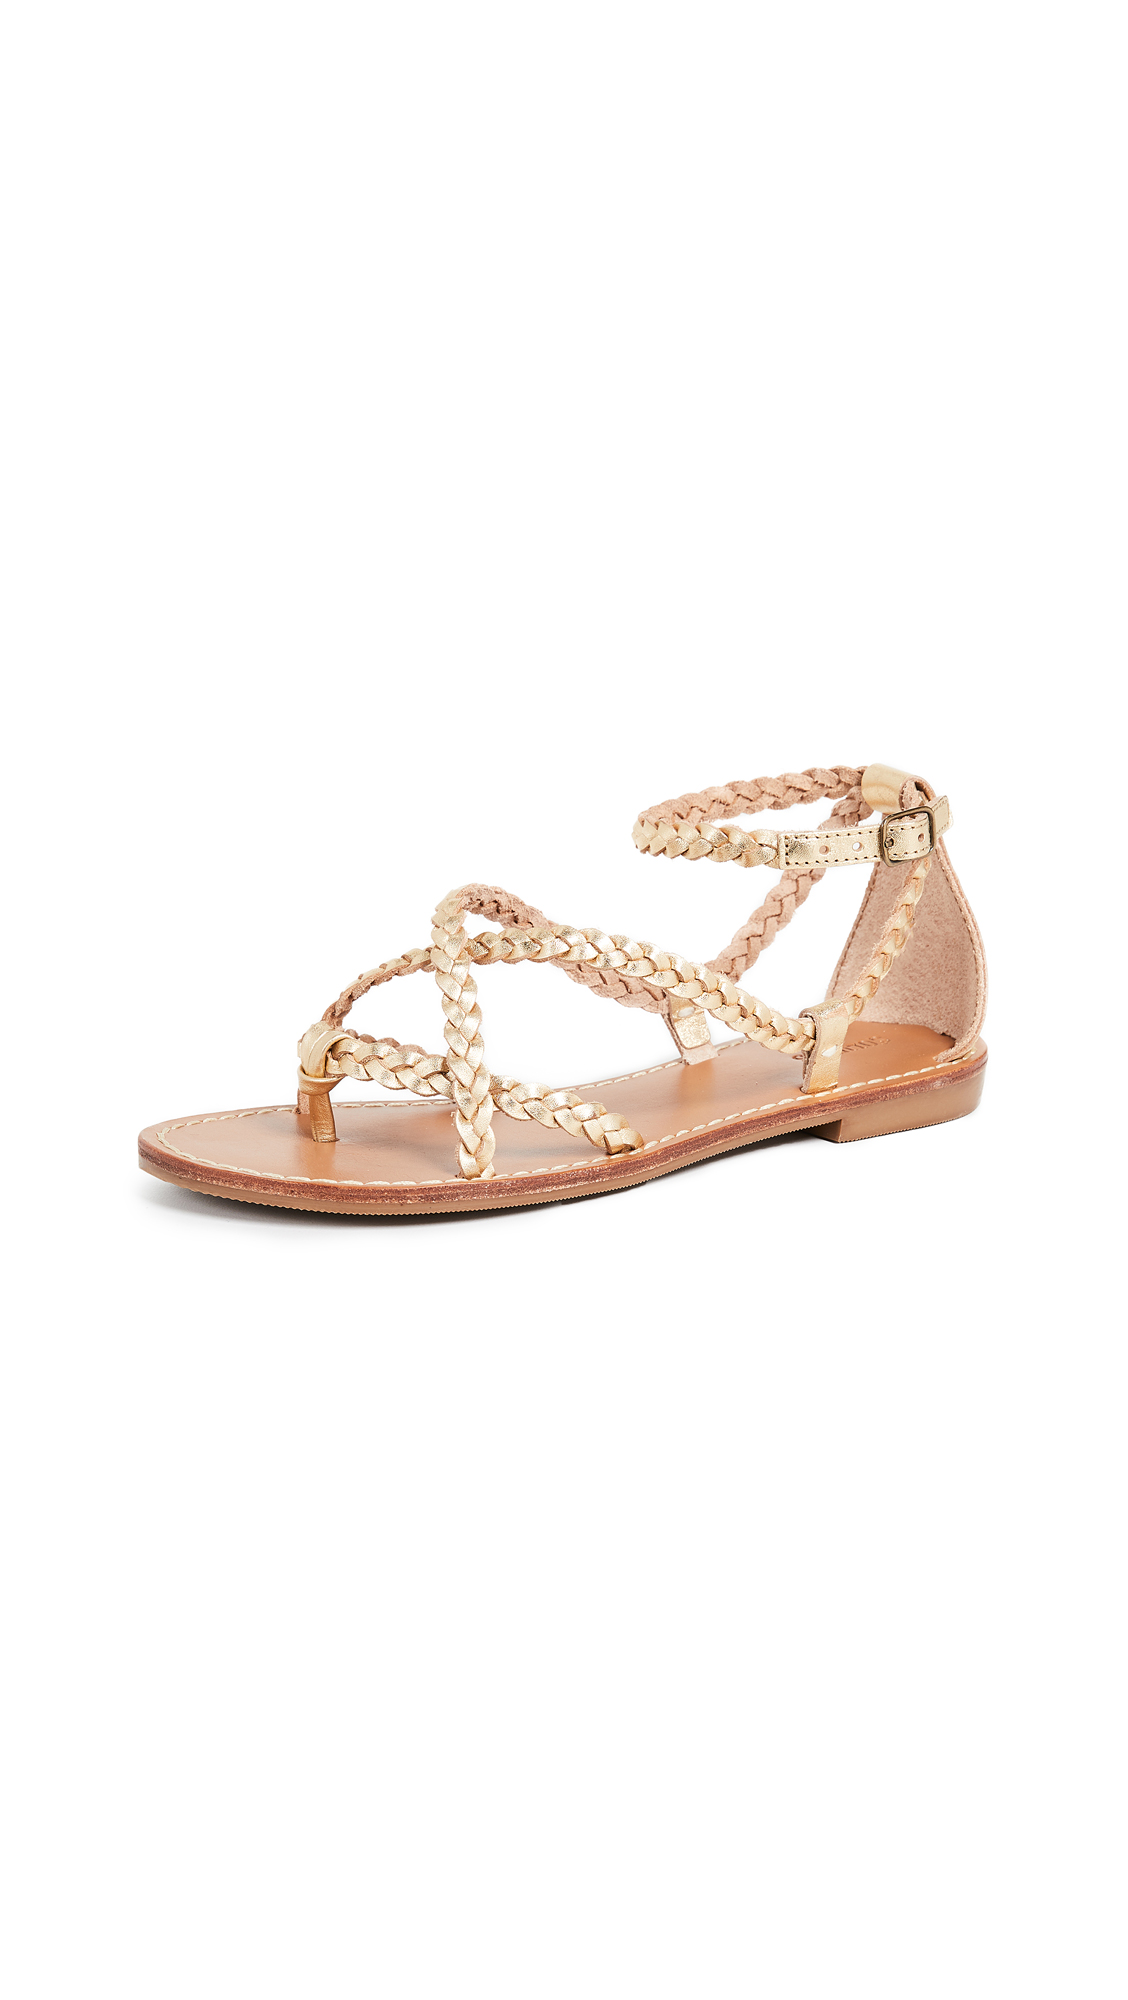 Soludos Amalfi Braided Metallic Sandals - Gold